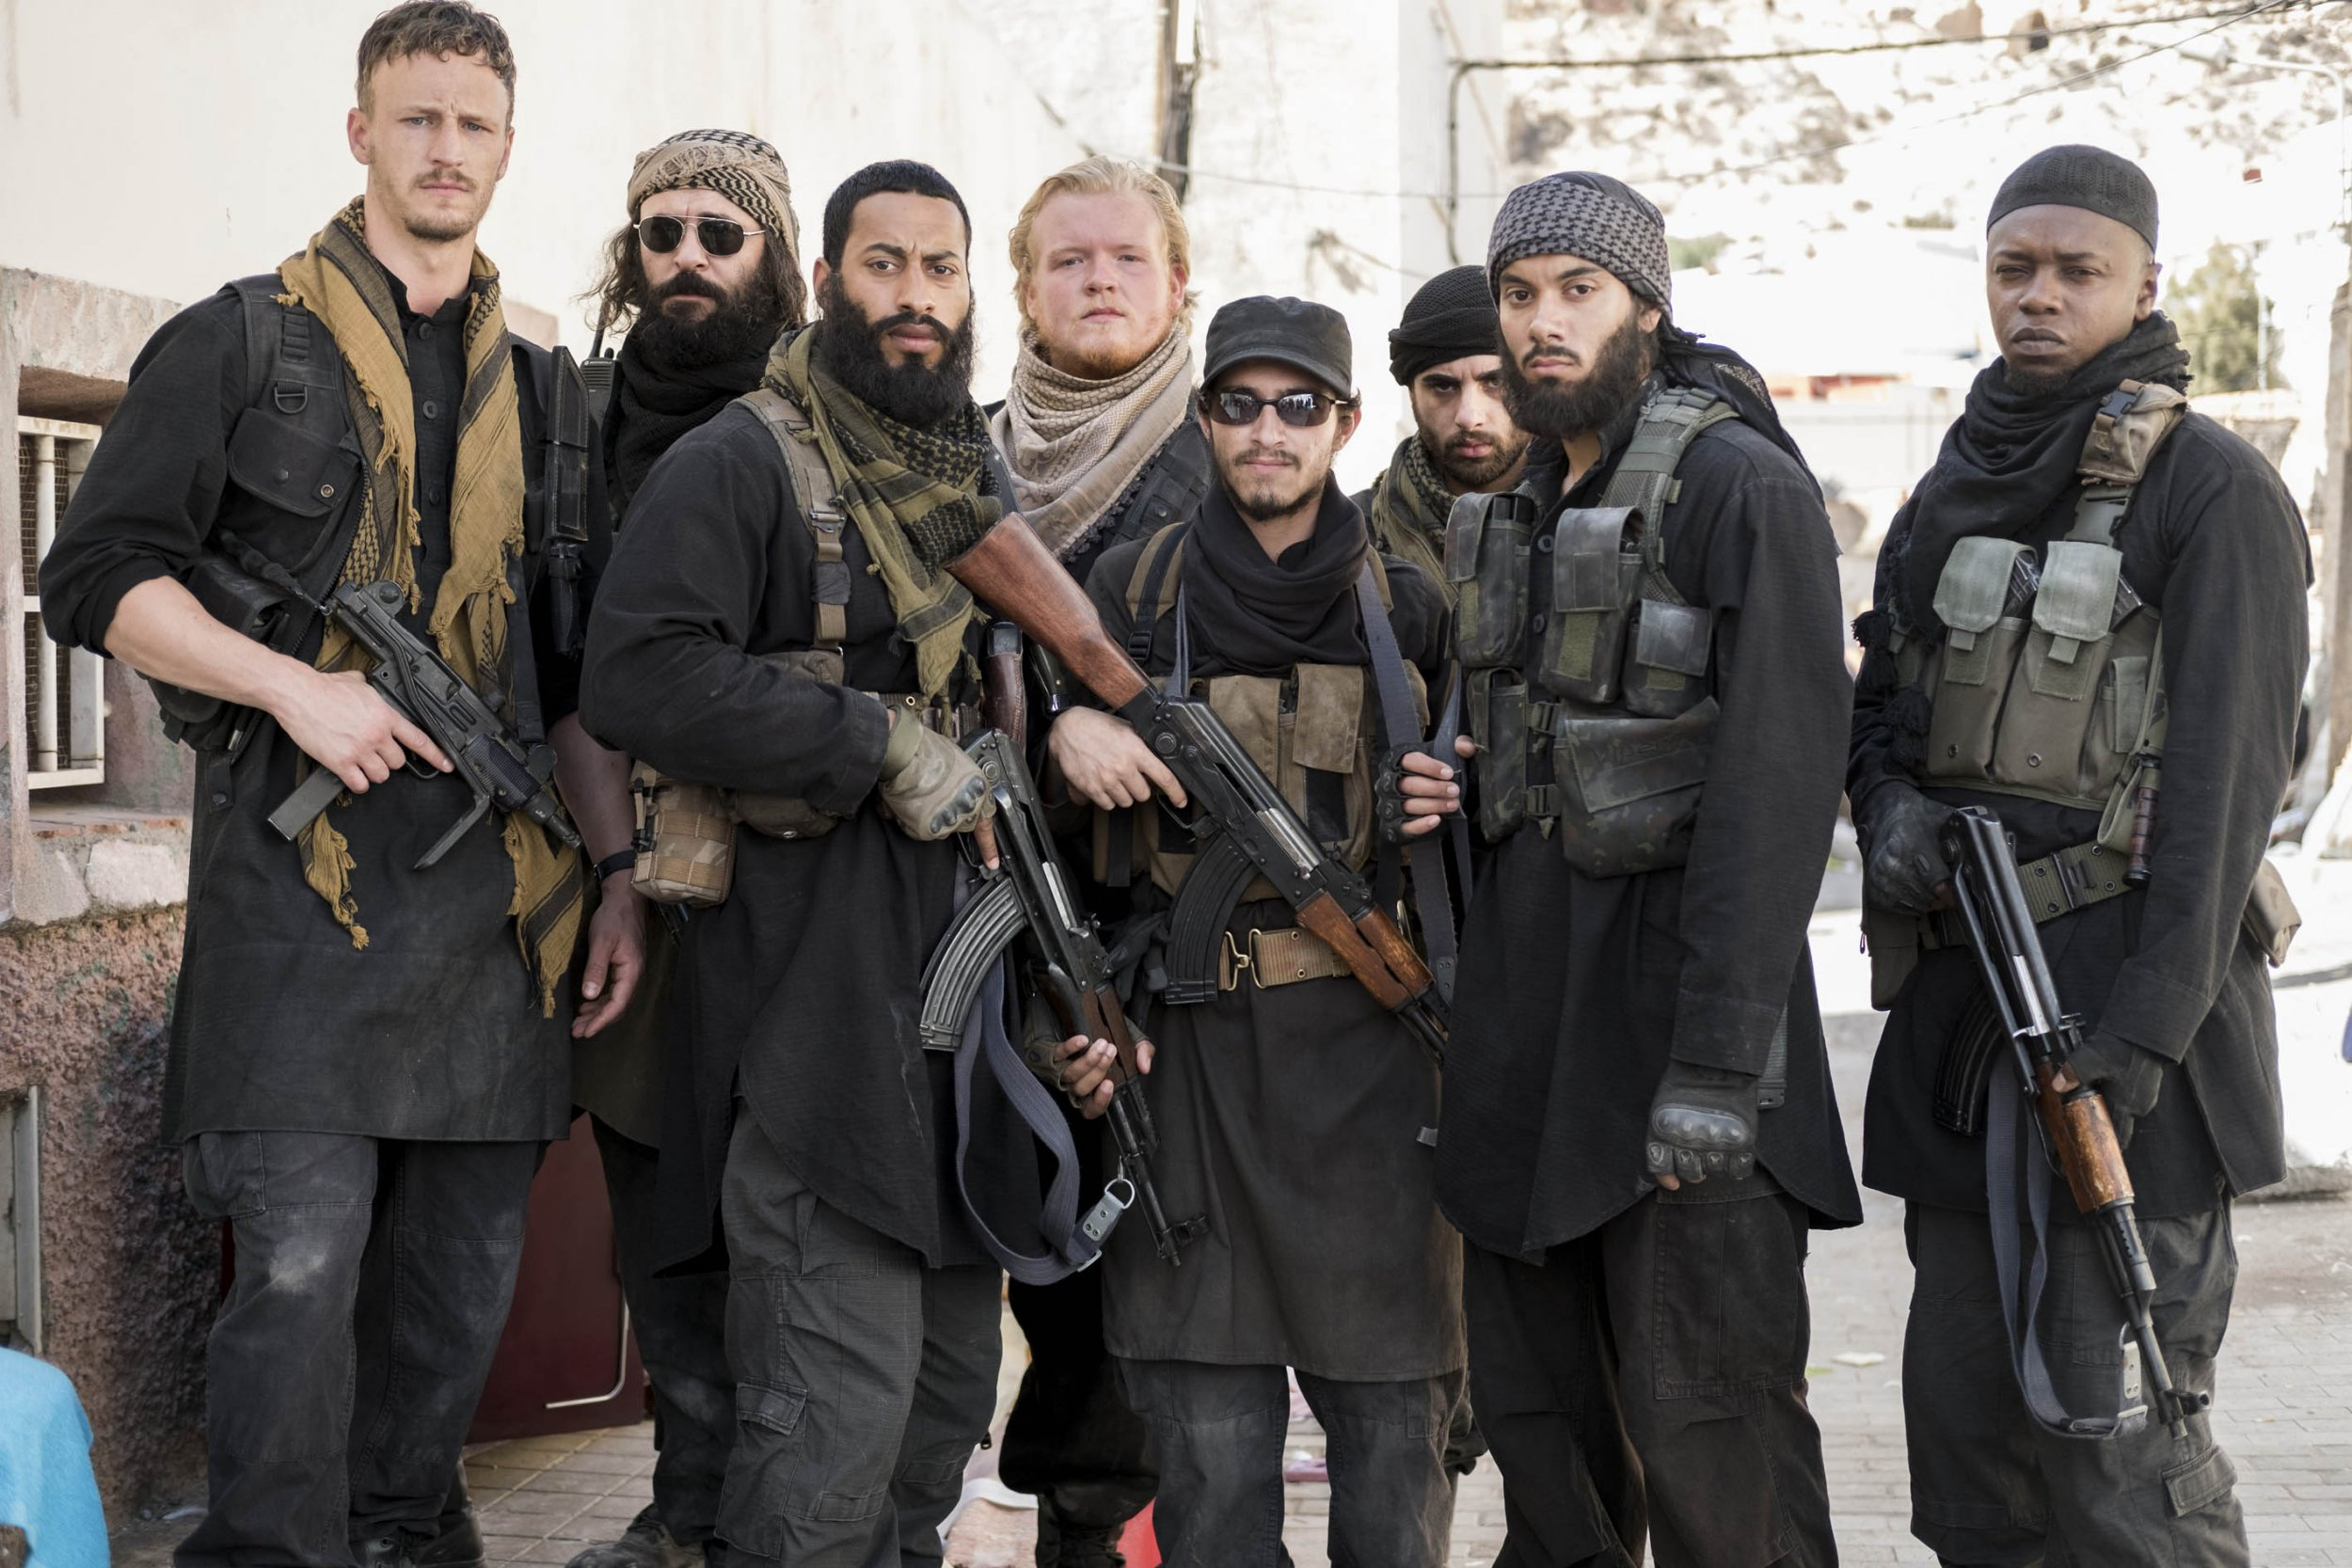 The State - ISIS TV drama